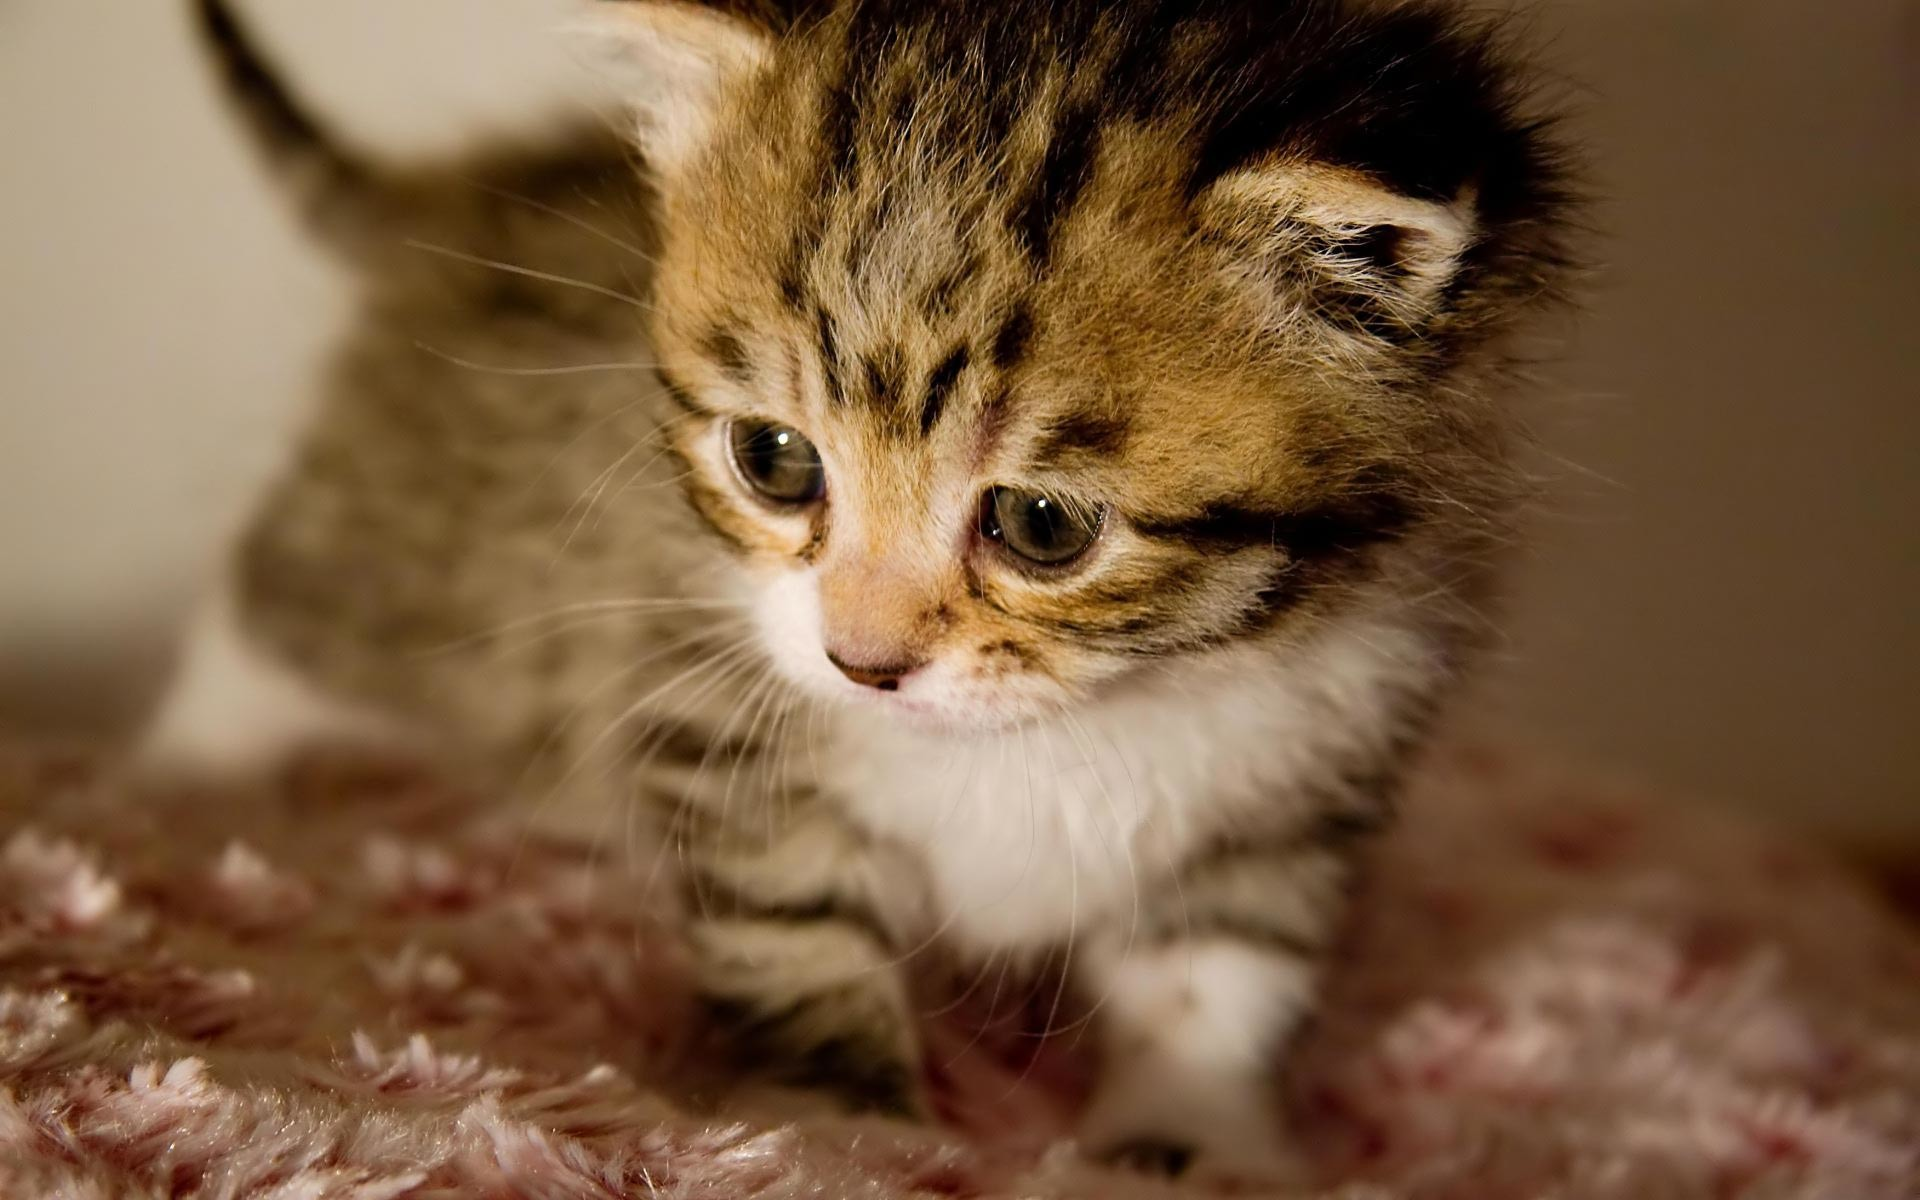 Cute Baby Animal Pictures Wallpapers (40 Wallpapers)